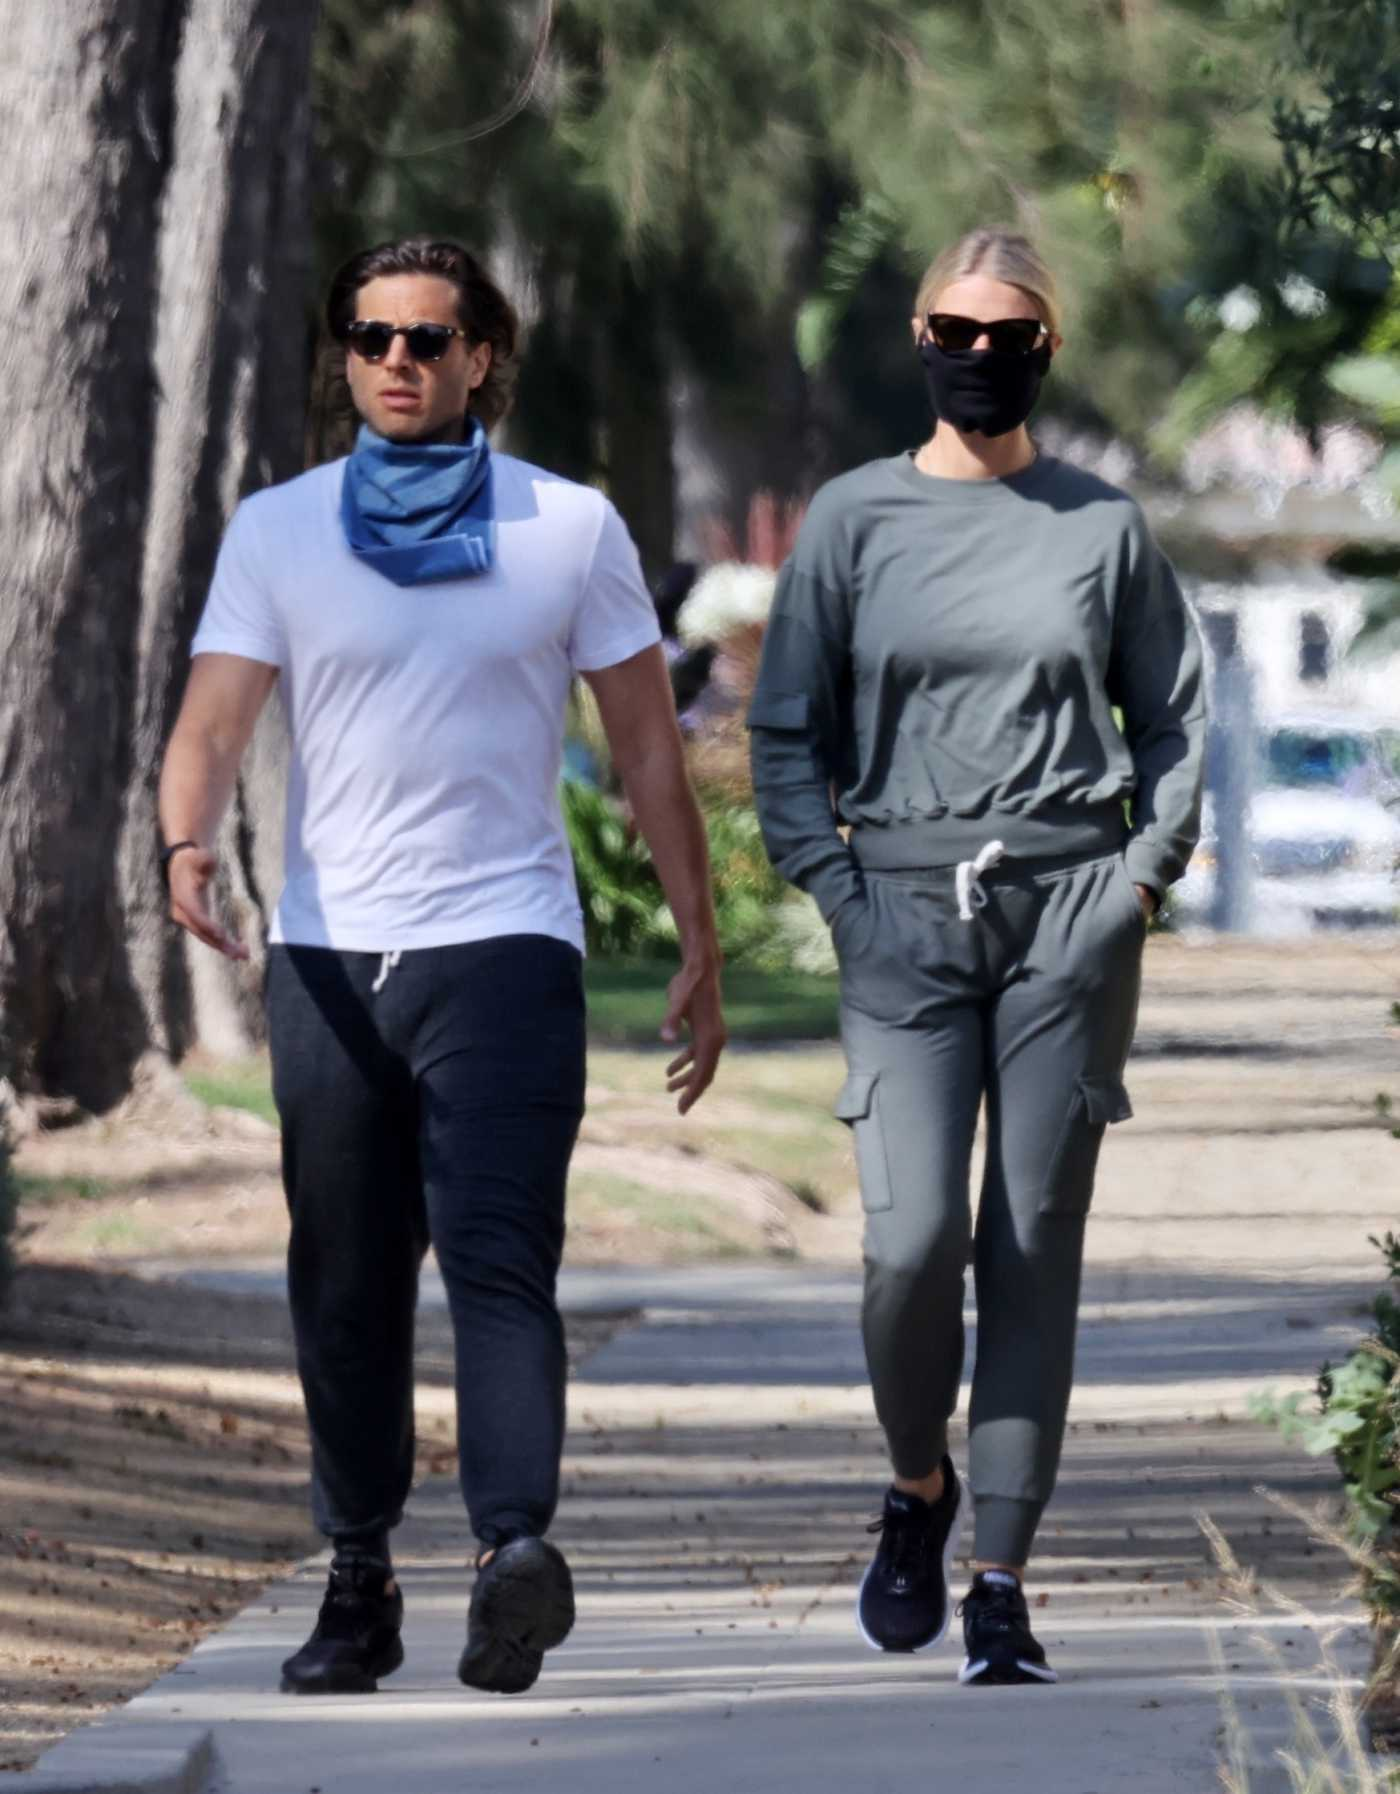 Gwyneth Paltrow in a Protective Mask Does an Afternoon Walk Out with Brad Falchuk Around Santa Monica 06/12/2020